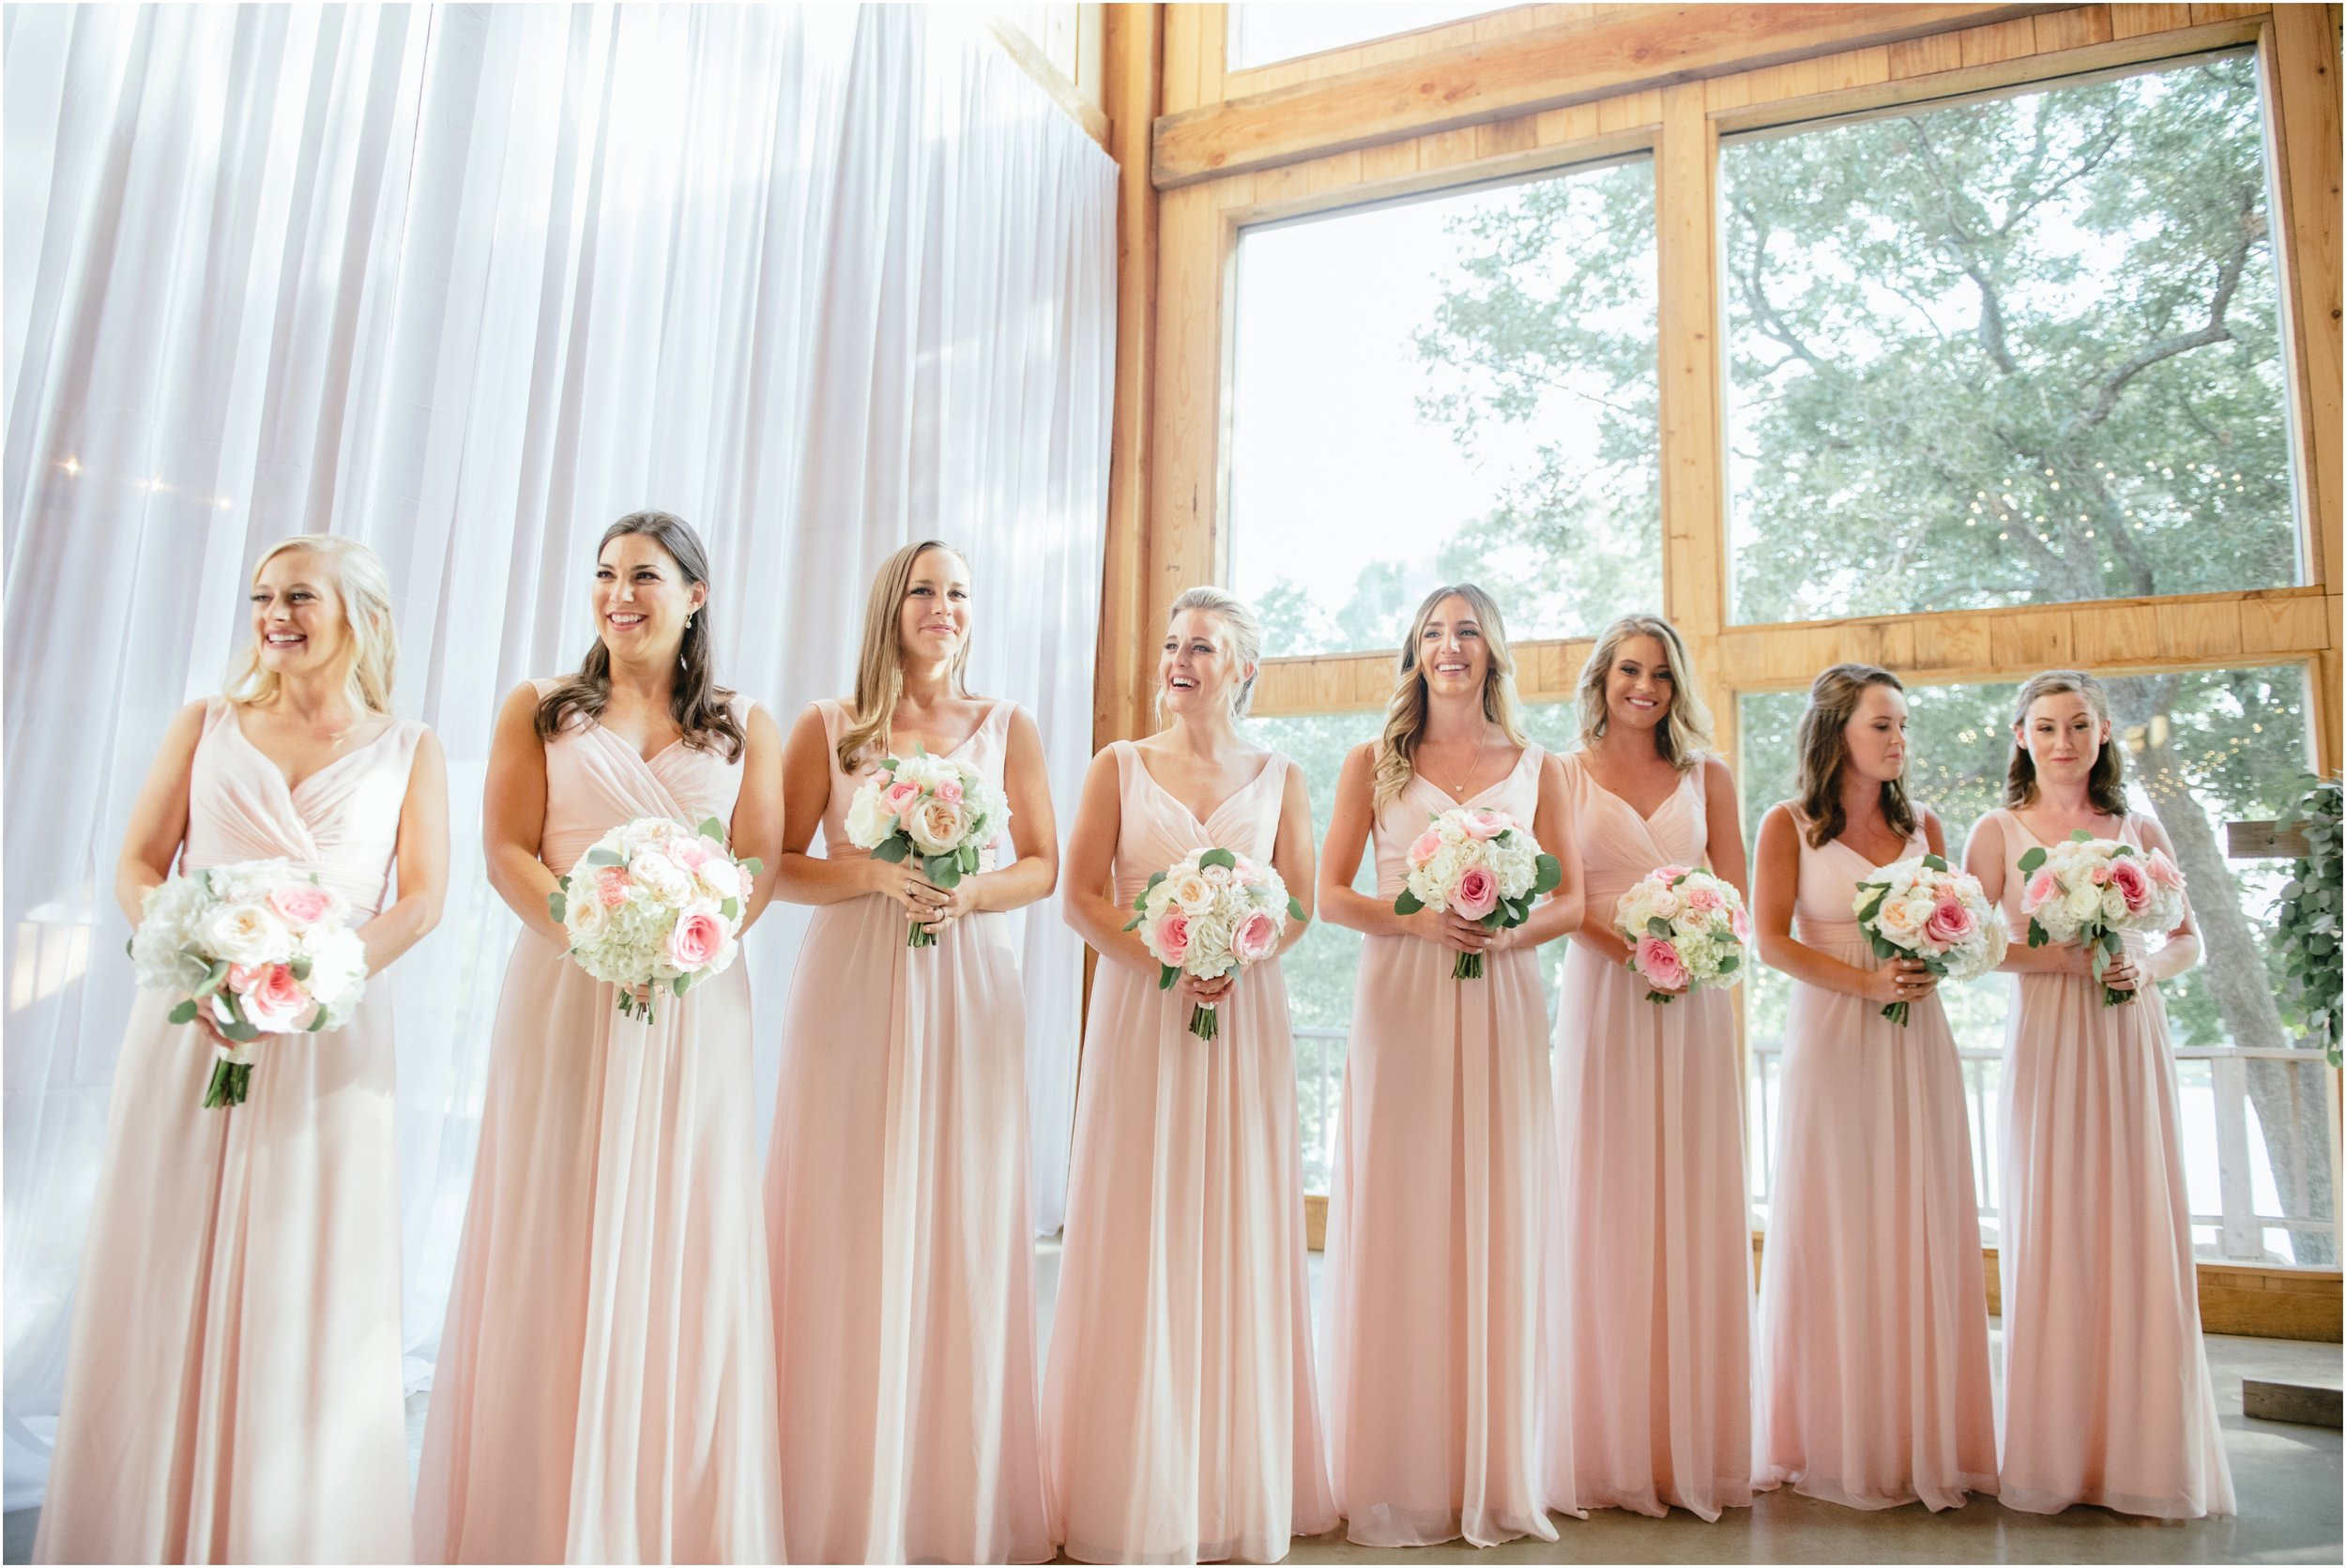 dallasweddingphotographer_fortworthweddingphotographer_texasweddingphotographer_mattandjulieweddings_whiterocklakewedding_KayleighClay_0018.jpg